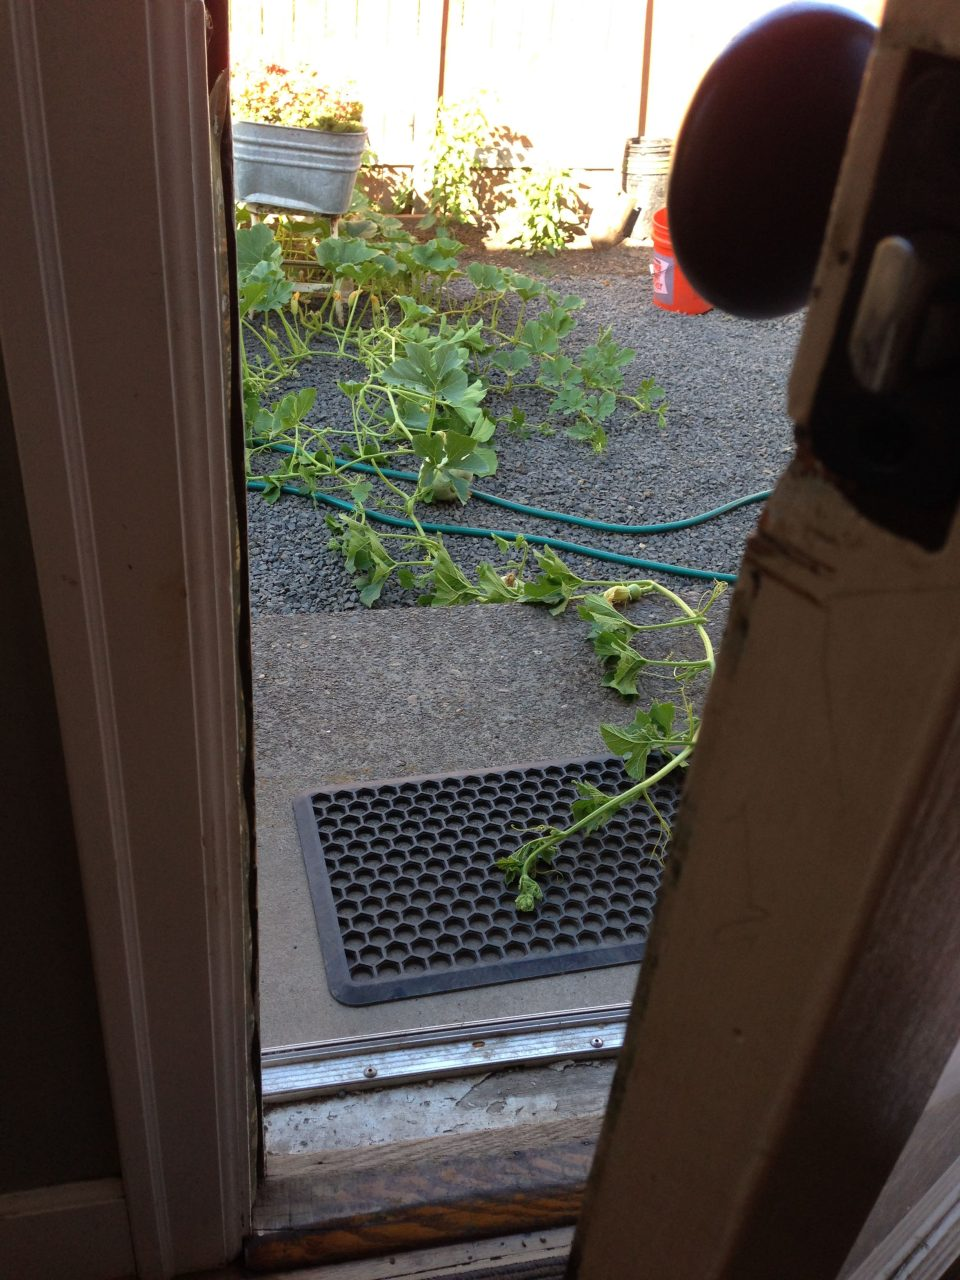 Squash Trying to Break into Our House